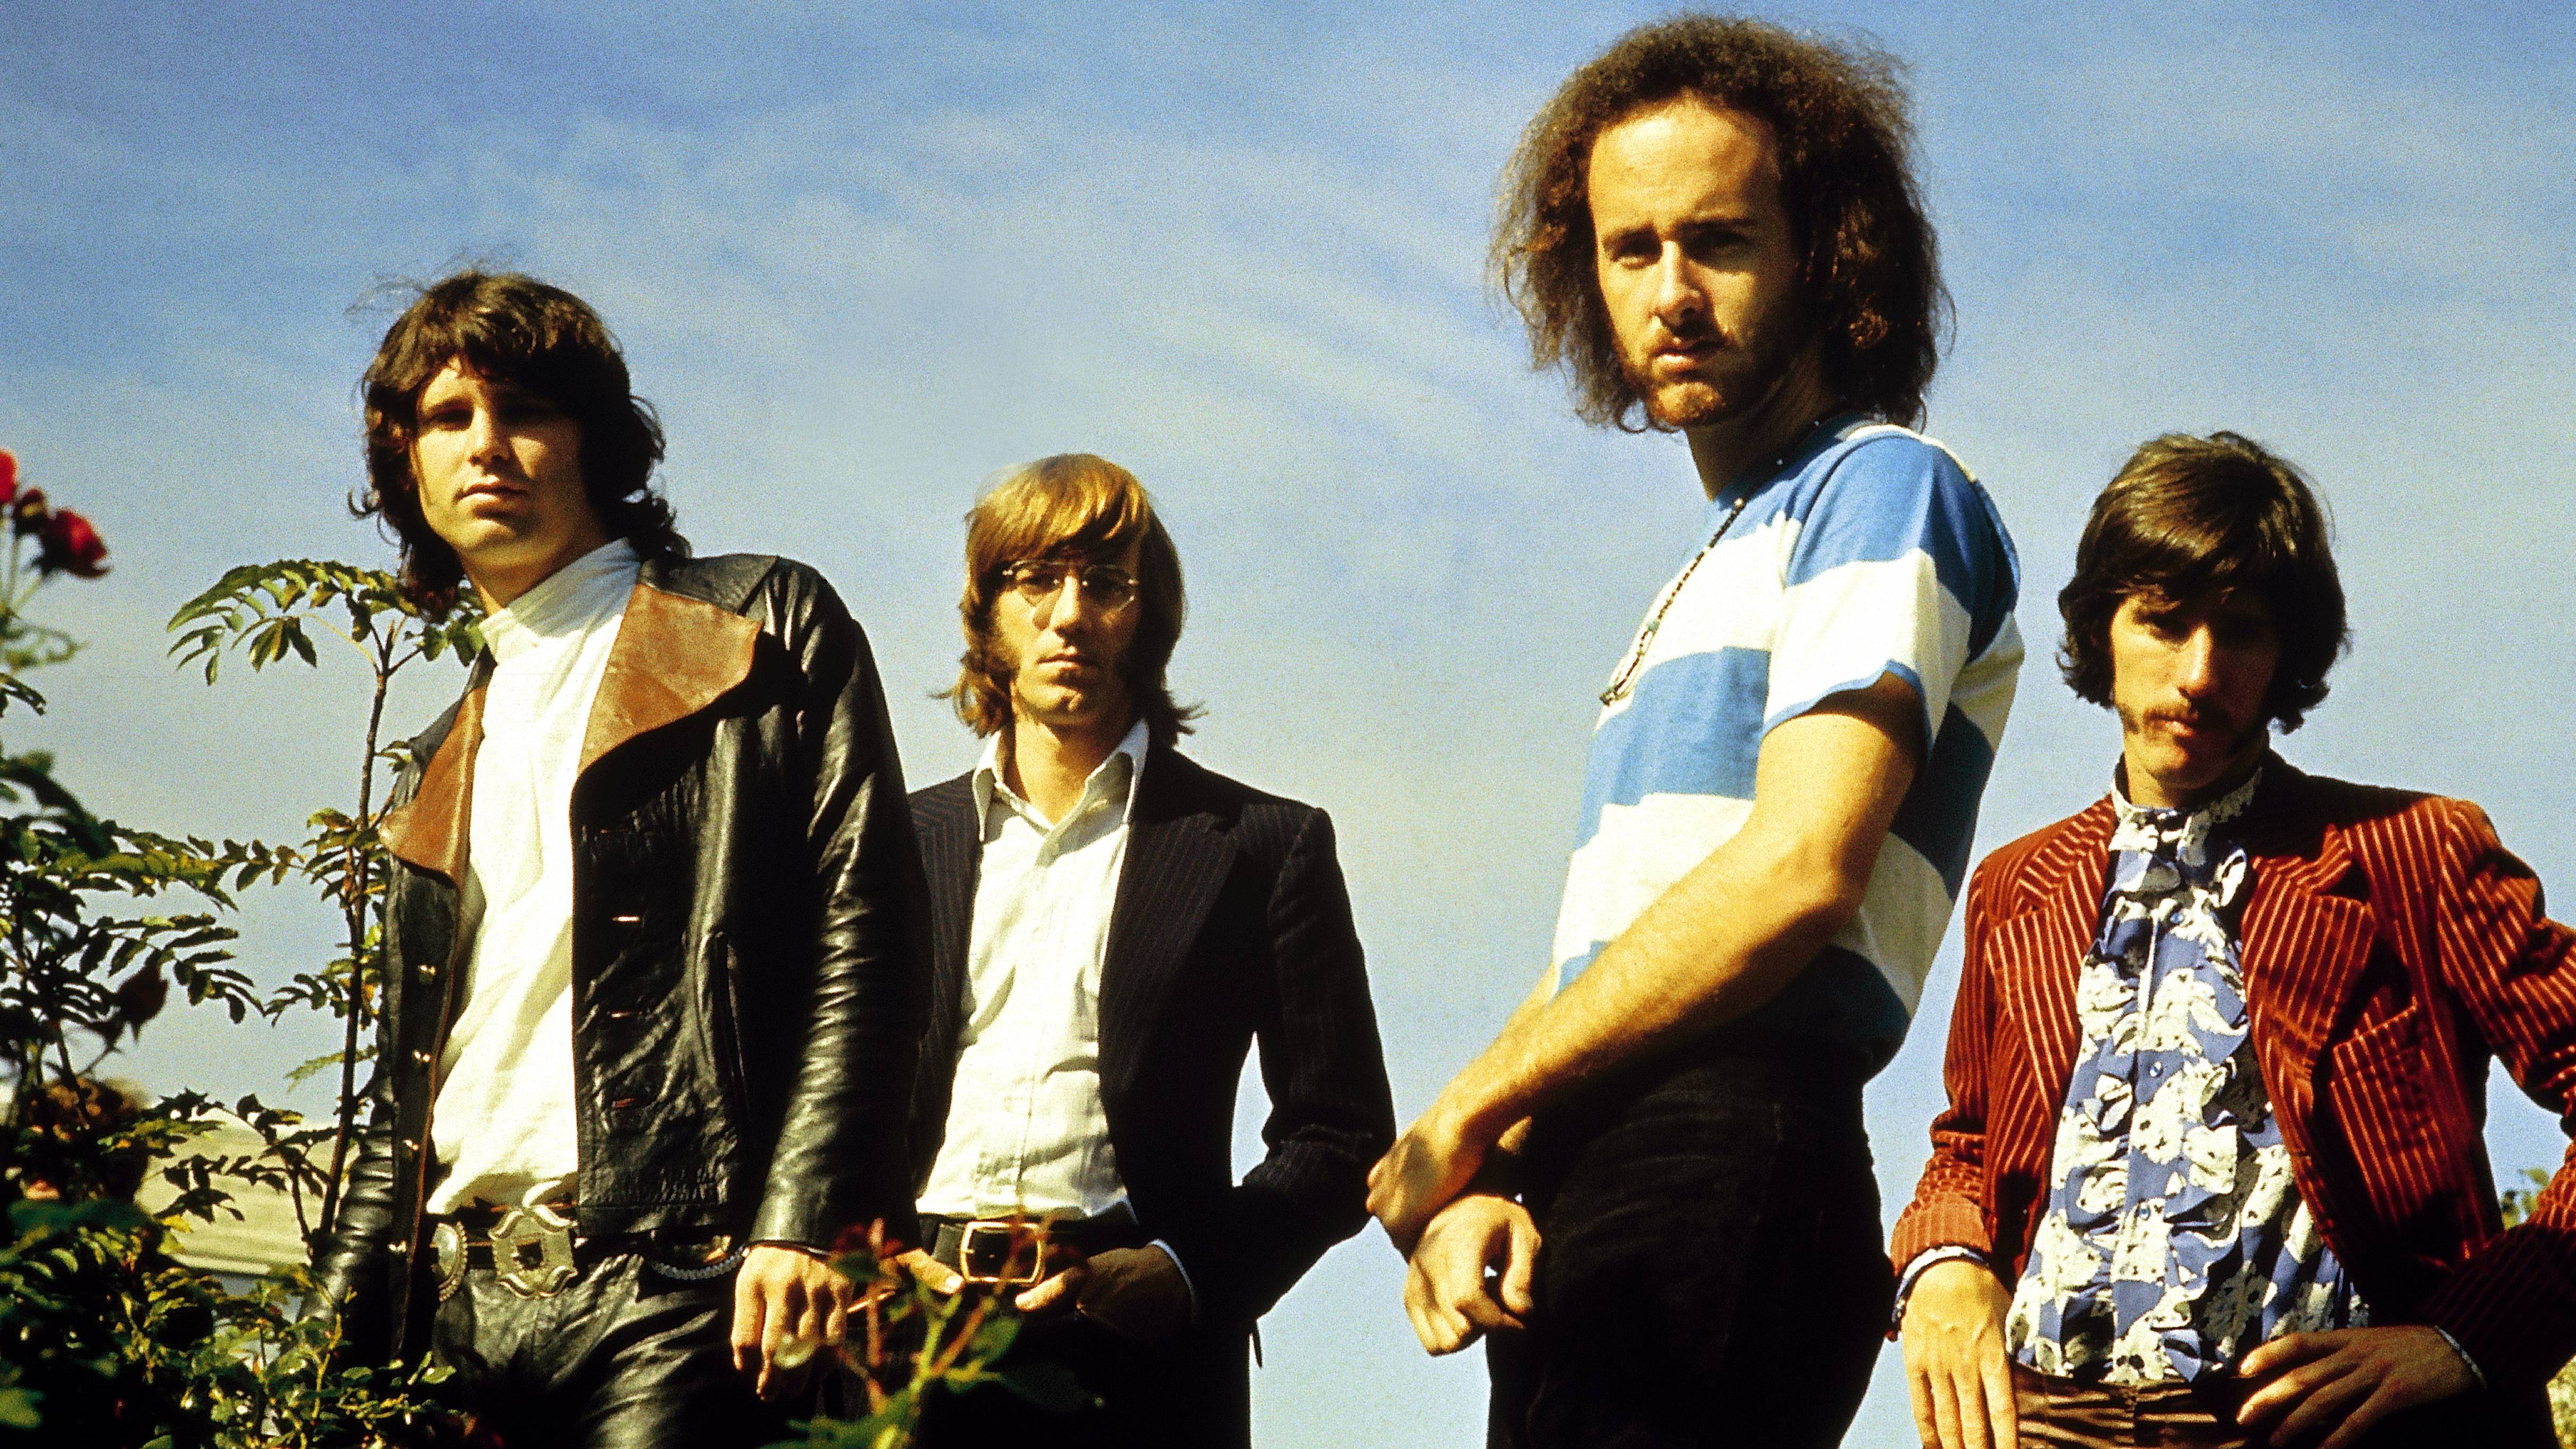 The Doors u0027Jimu0027s Death We Have To Accept That Alcohol Was The Main Culpritu0027 | Louder  sc 1 th 168 & The Doors: u0027Jimu0027s Death We Have To Accept That Alcohol Was The Main ...